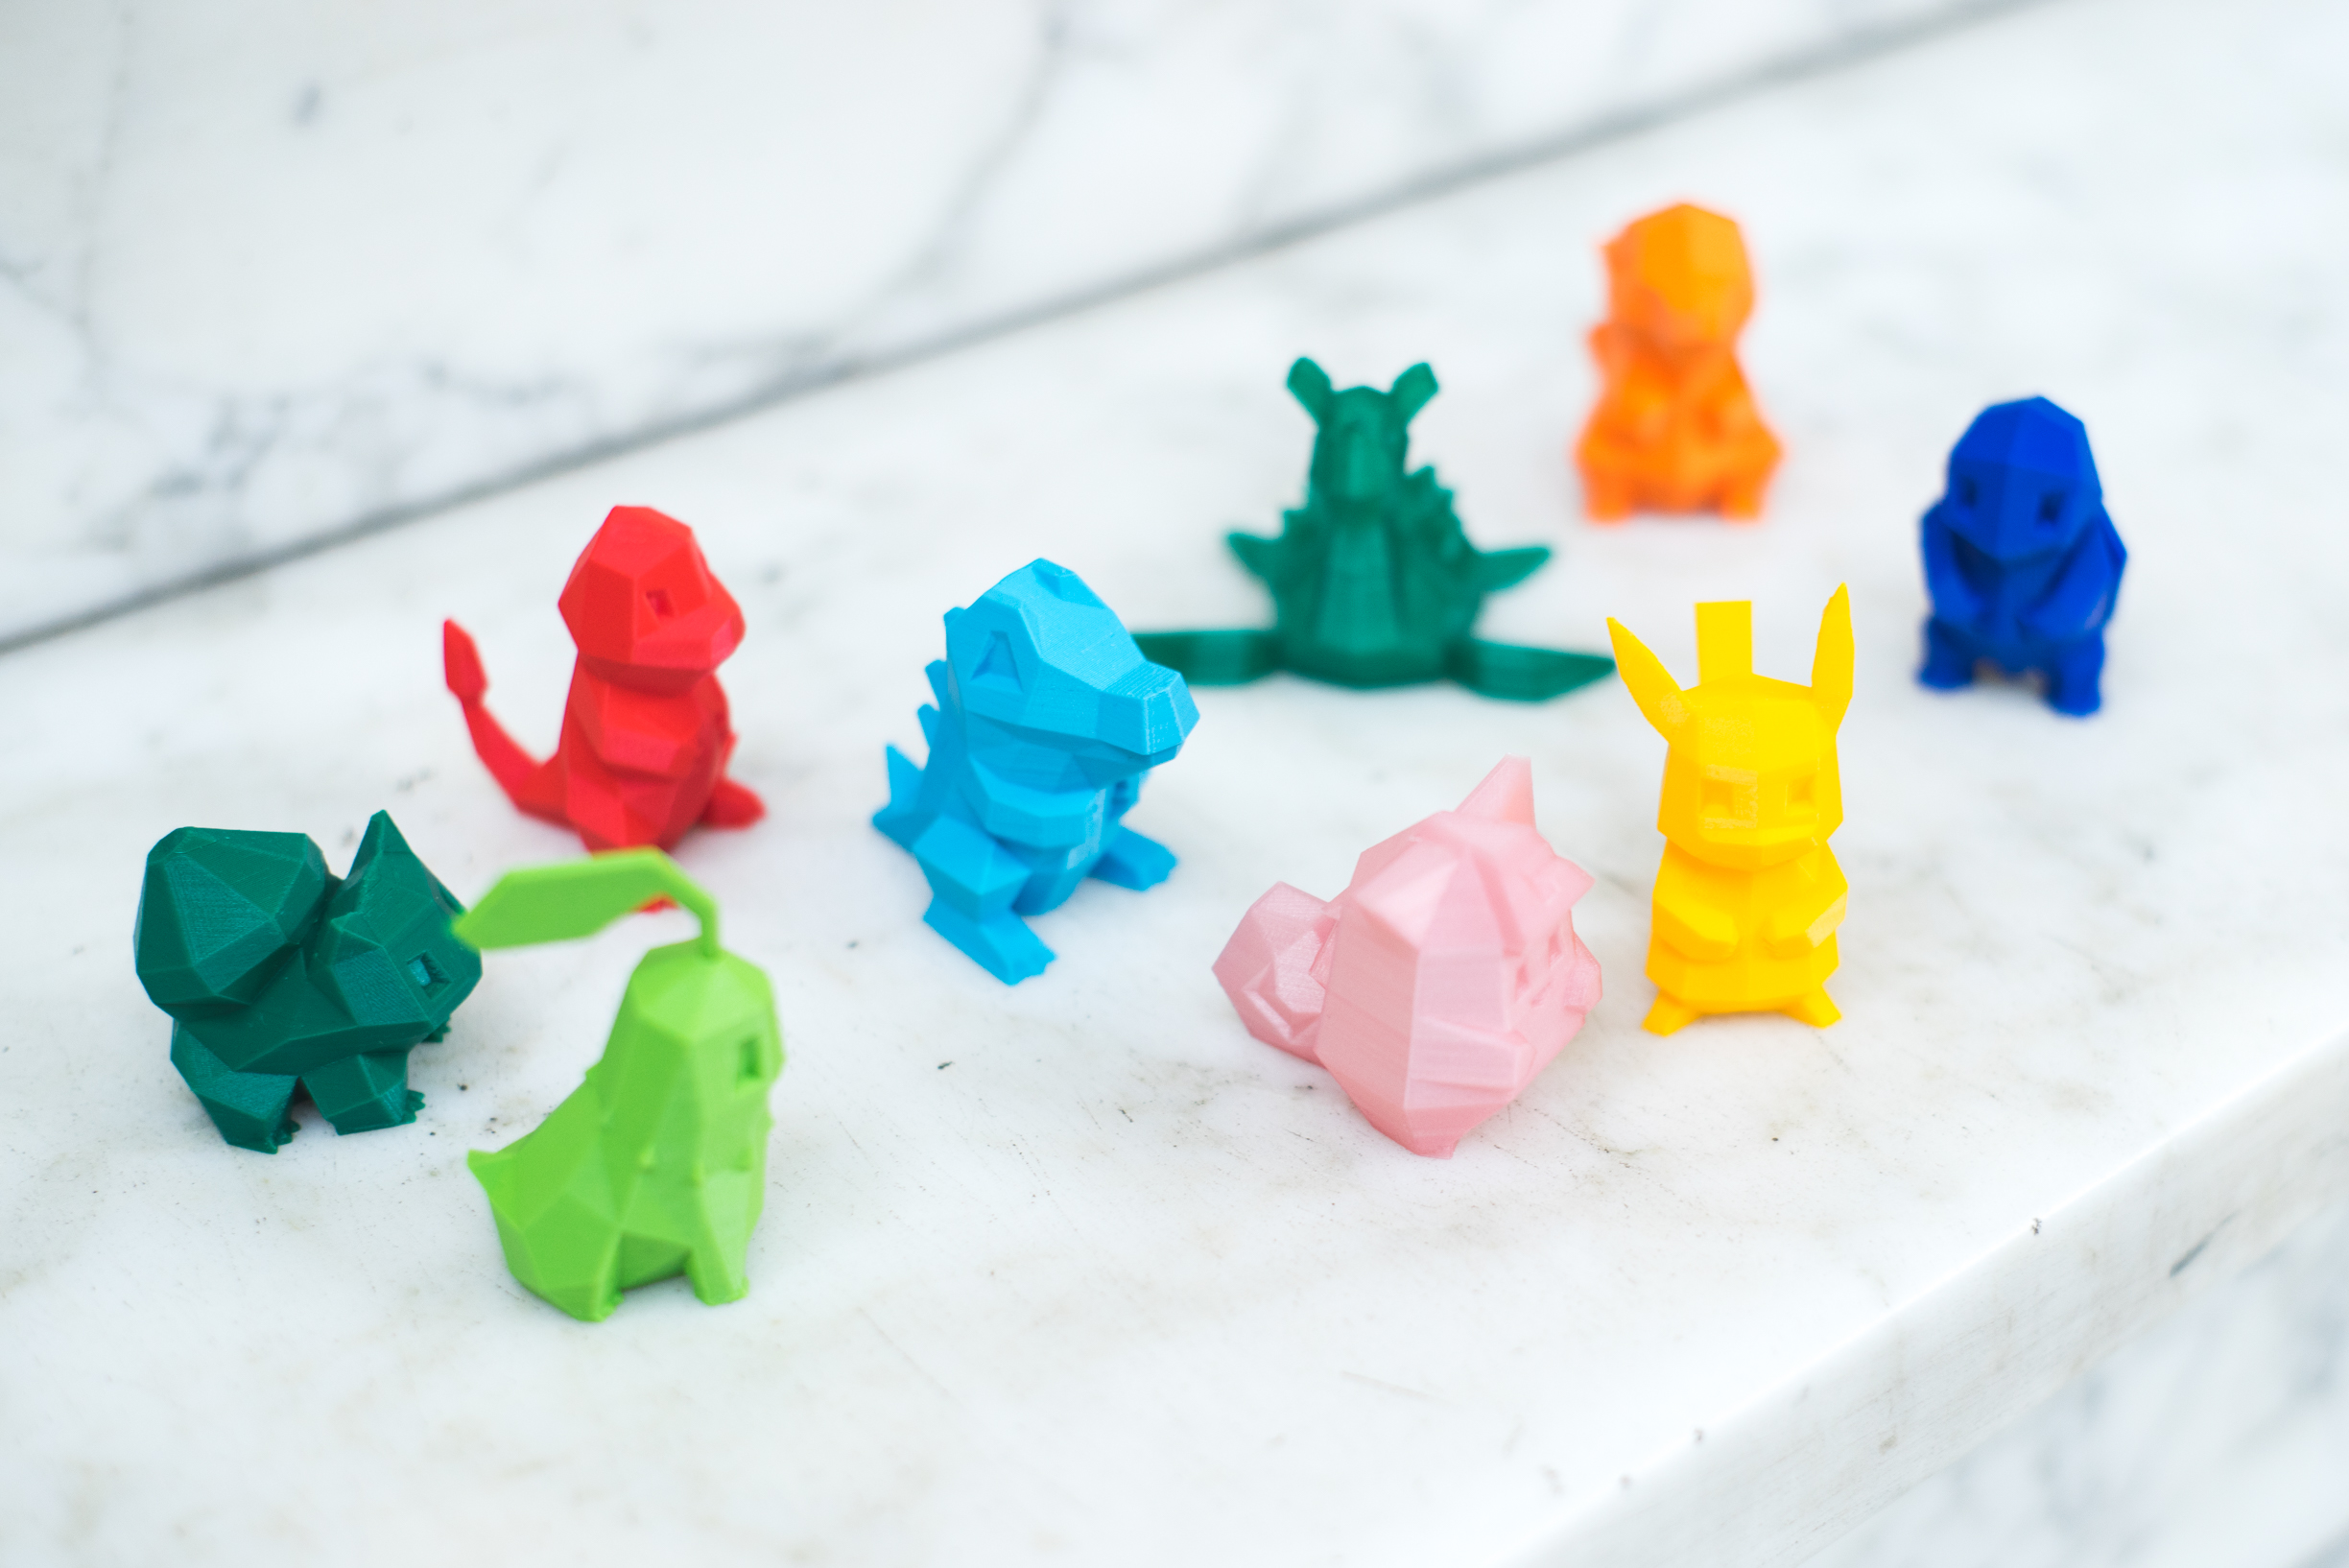 3D printed Pokemon toys.